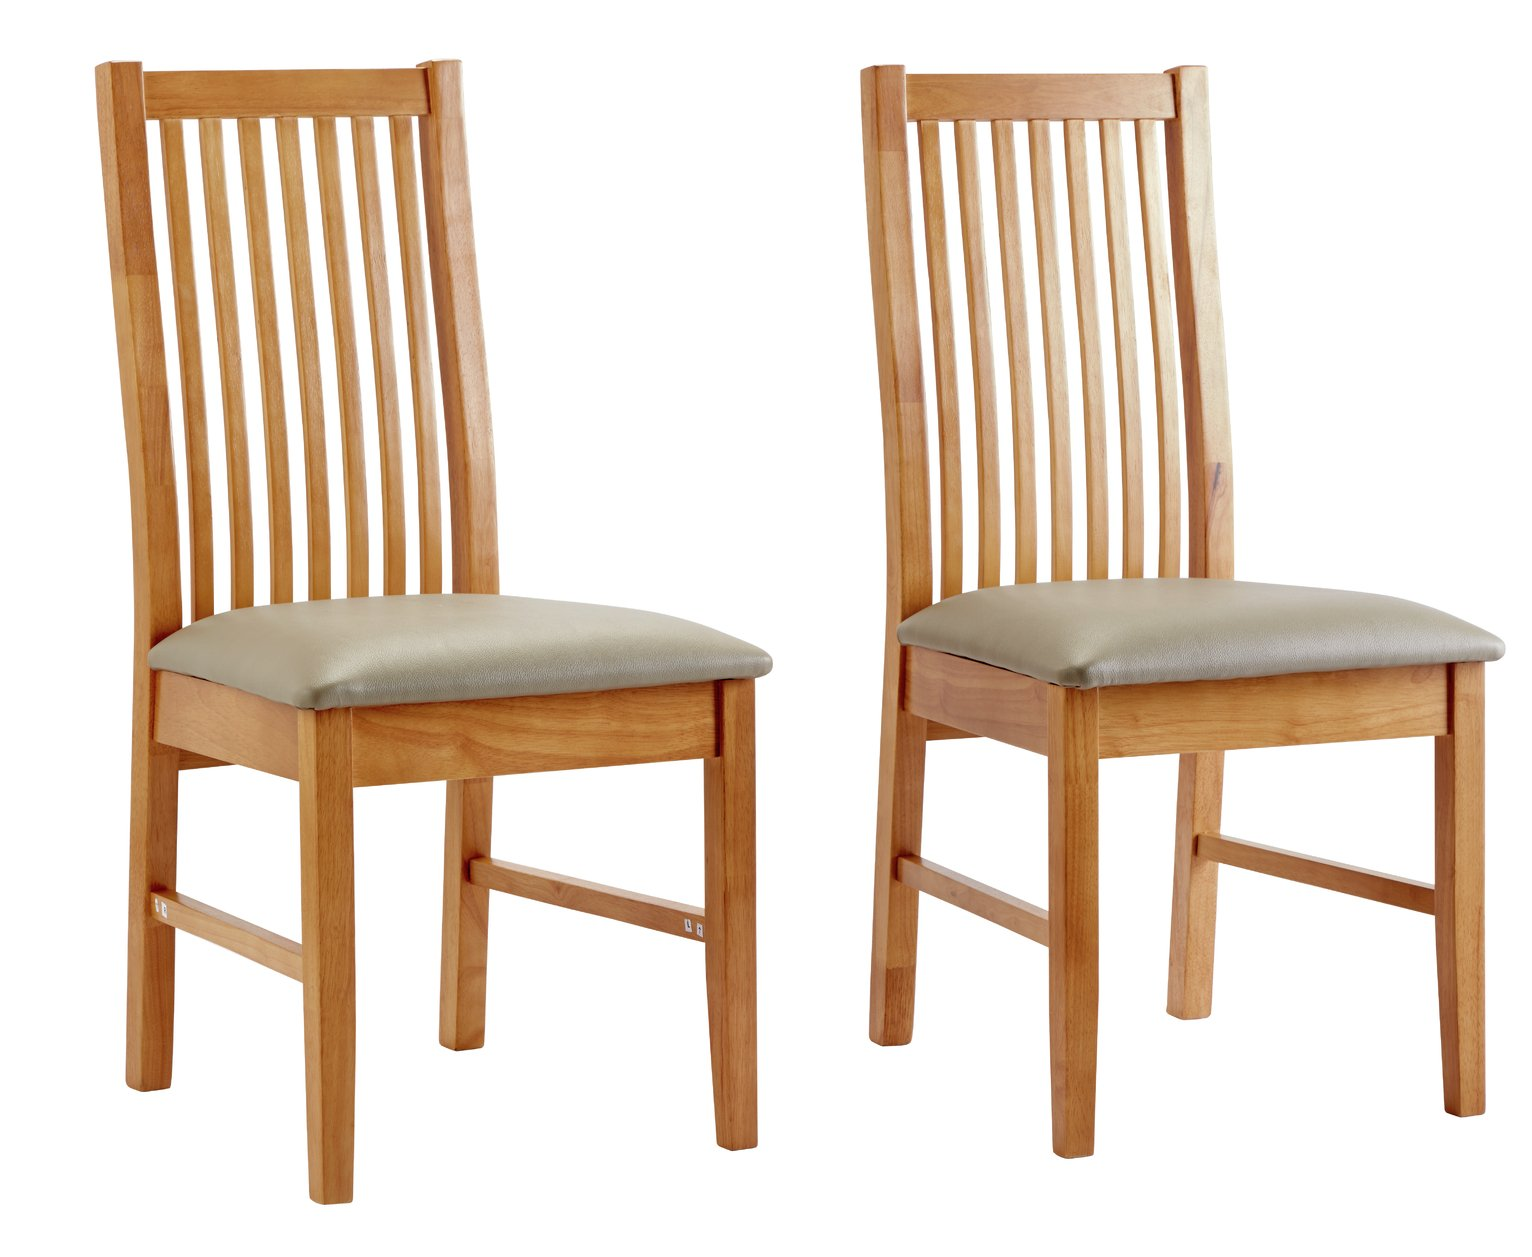 172 & Buy Argos Home Paris Pair of Solid Oak Dining Chairs - Grey | Dining chairs | Argos